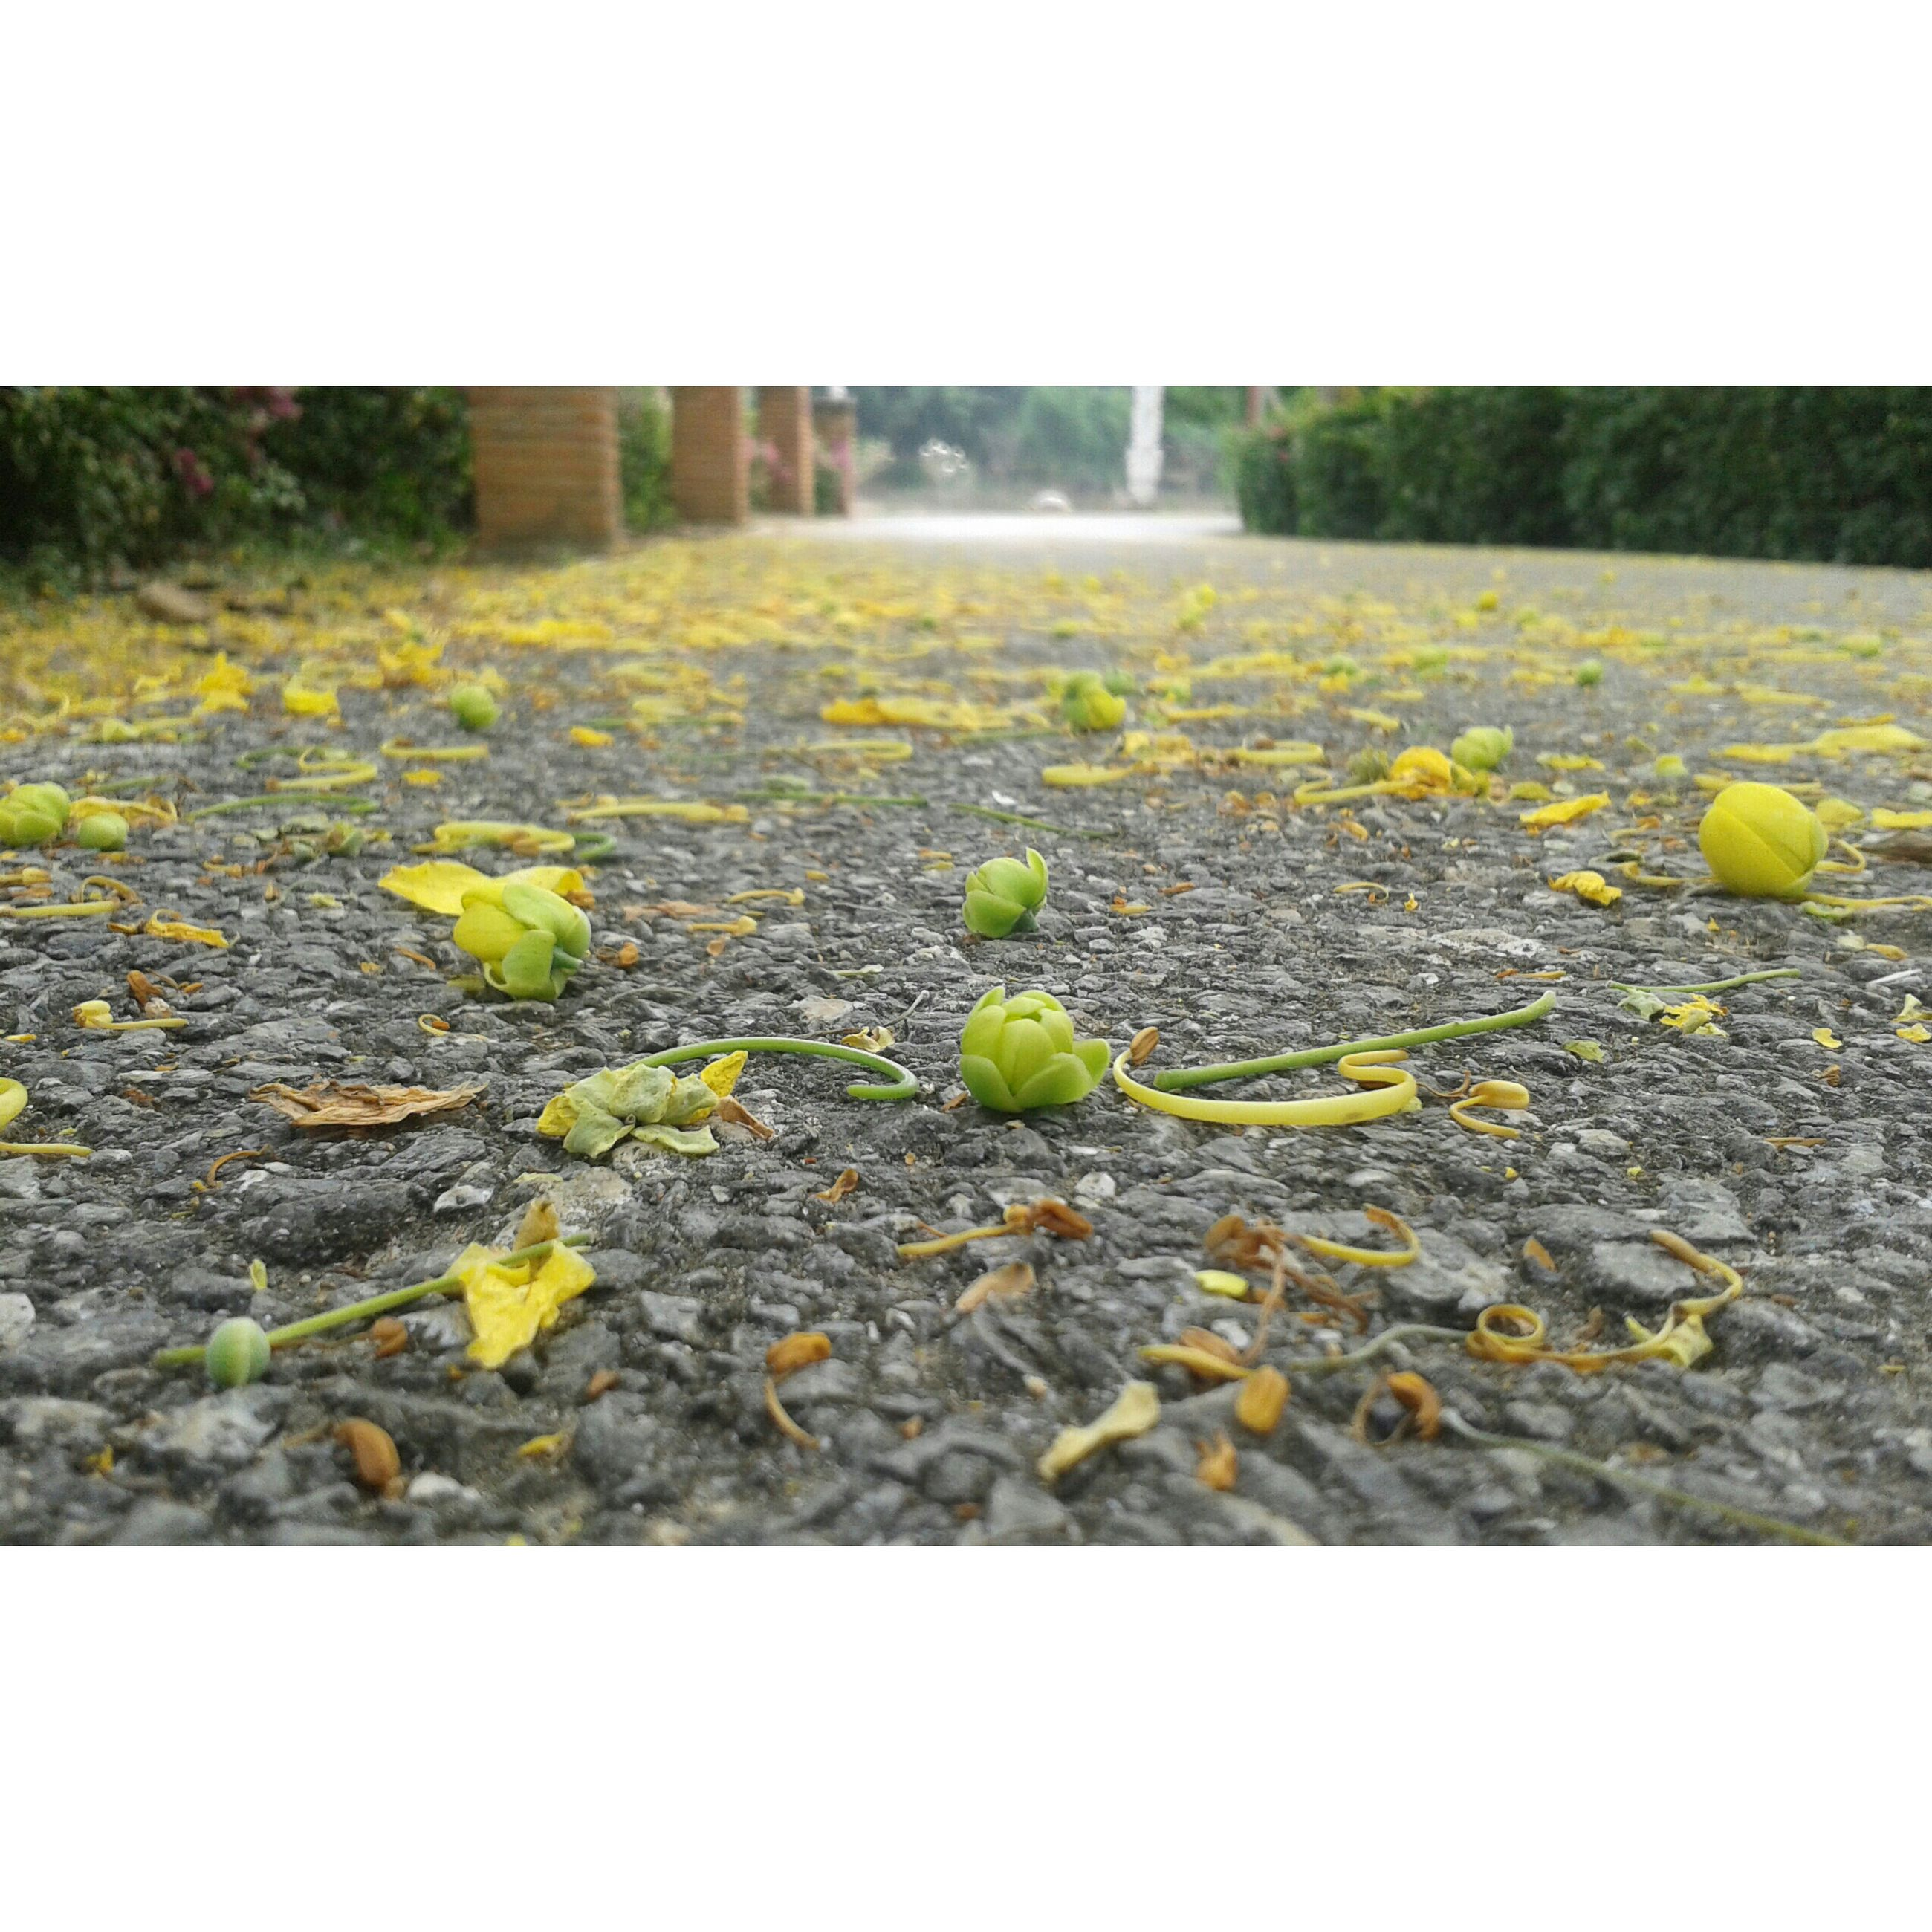 transfer print, auto post production filter, leaf, fragility, yellow, nature, plant, flower, field, growth, surface level, dry, beauty in nature, falling, fallen, season, autumn, outdoors, freshness, day